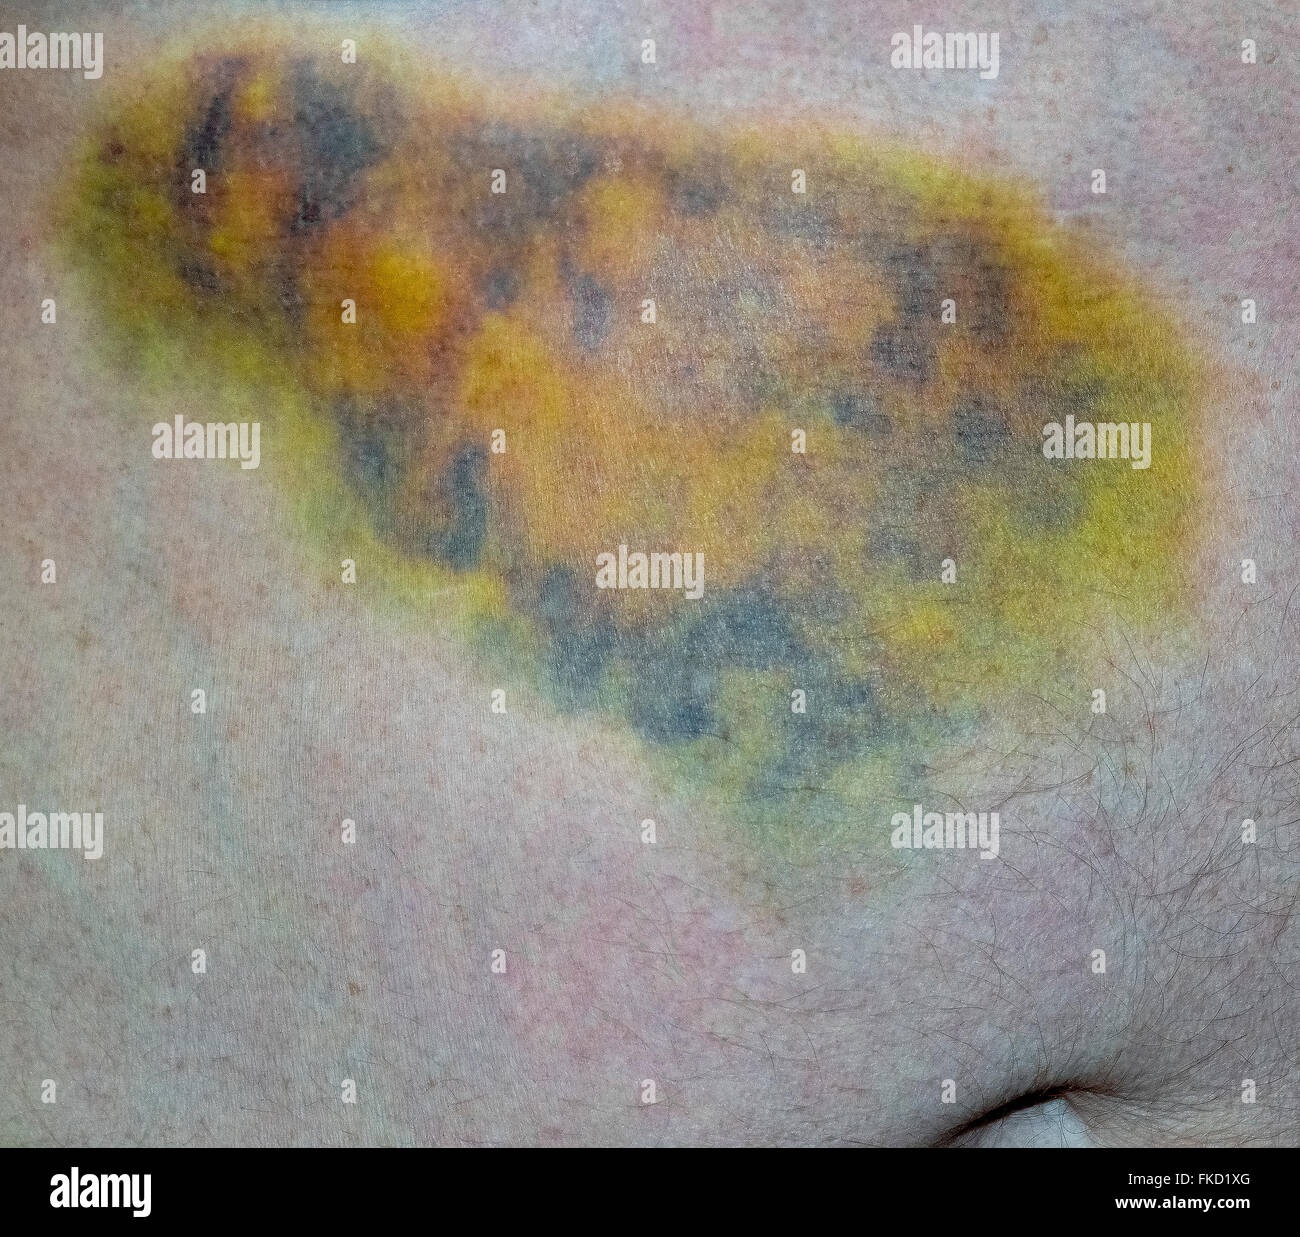 This close-up shows the multicolored effects of a body bruise on the stomach of a Caucasian man who fell and broke small blood vessels that leaked into the tissues under the skin. Bruises often turn various colors as they heal but usually fade away within two to four weeks without any long-lasting harm to the person. Stock Photo